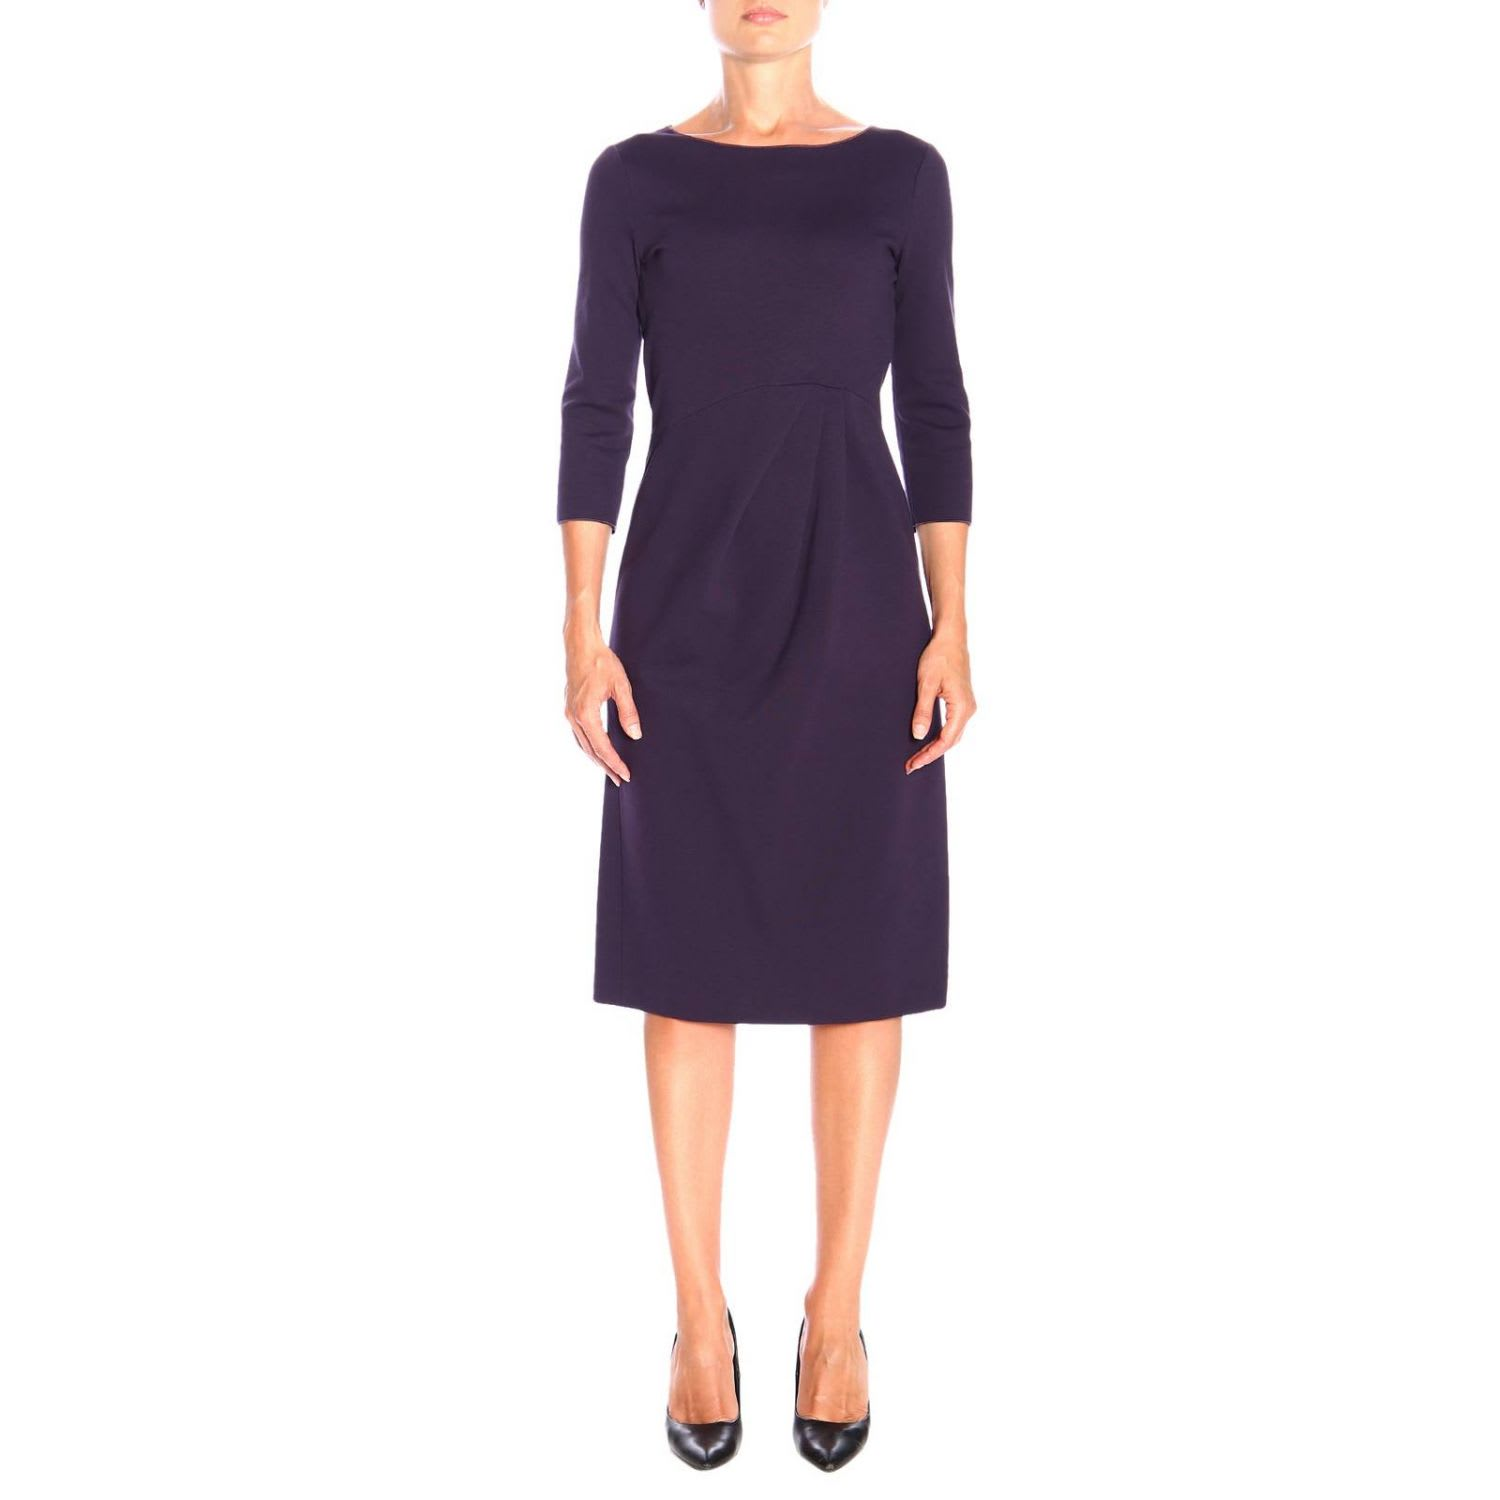 Emporio Armani Dress Emporio Armani Dress In Draped Milano Stitch